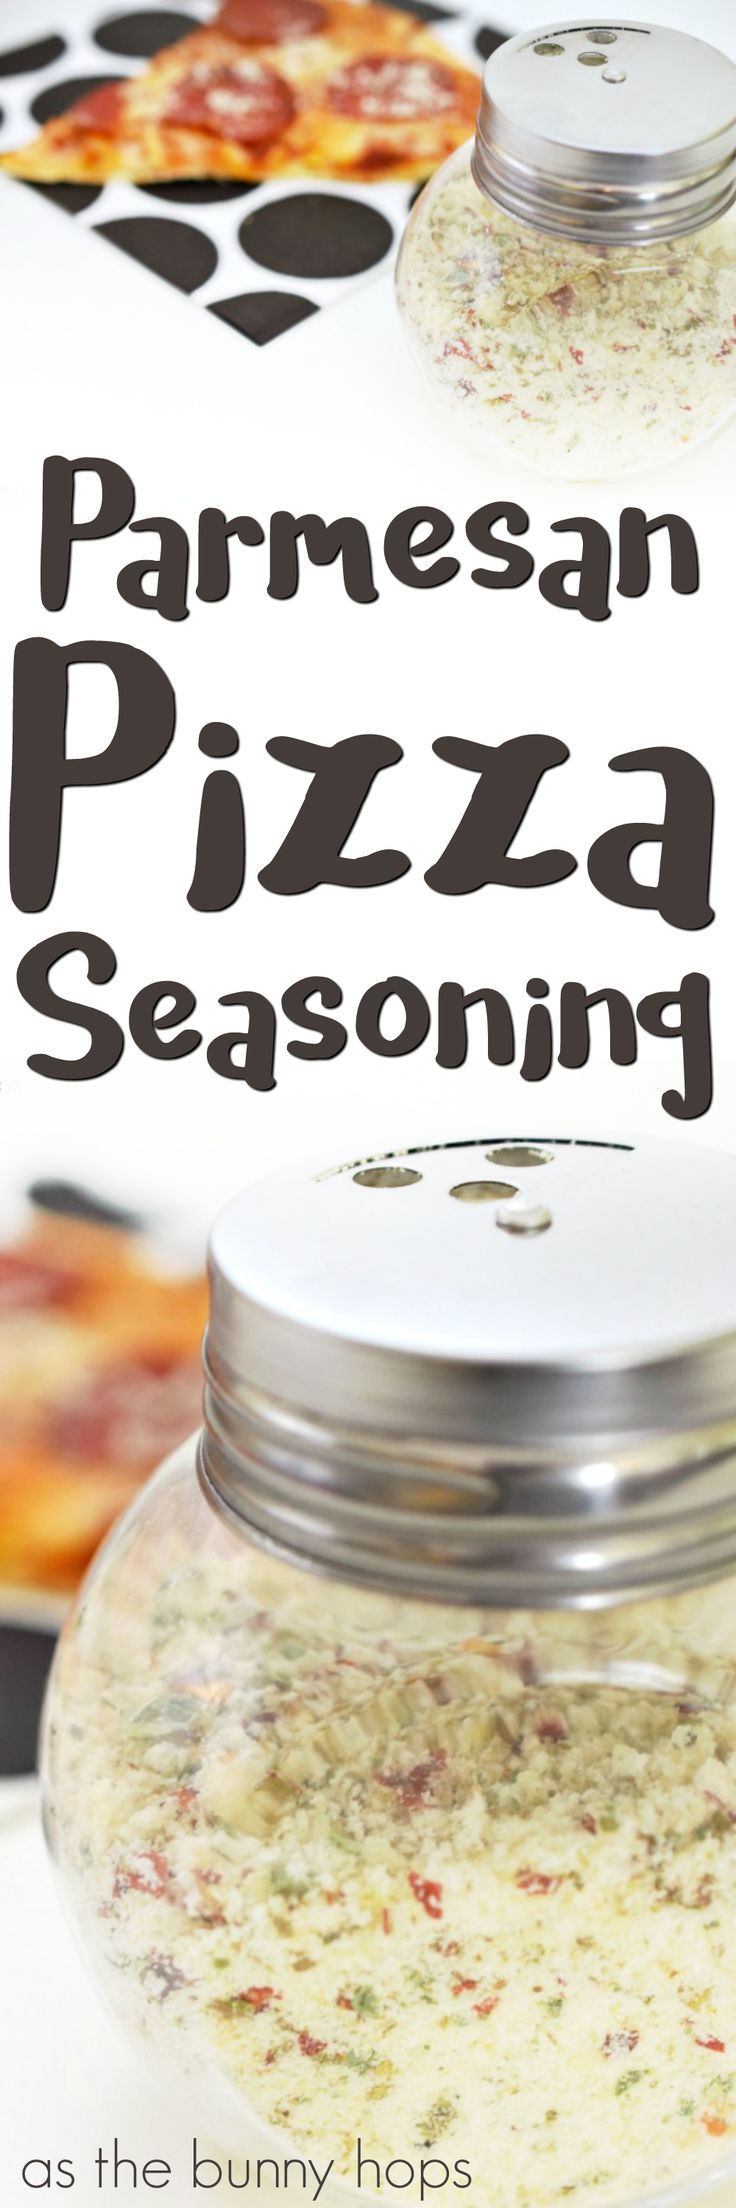 Want to step up your pizza game? Try this delicious parmesan pizza seasoning!